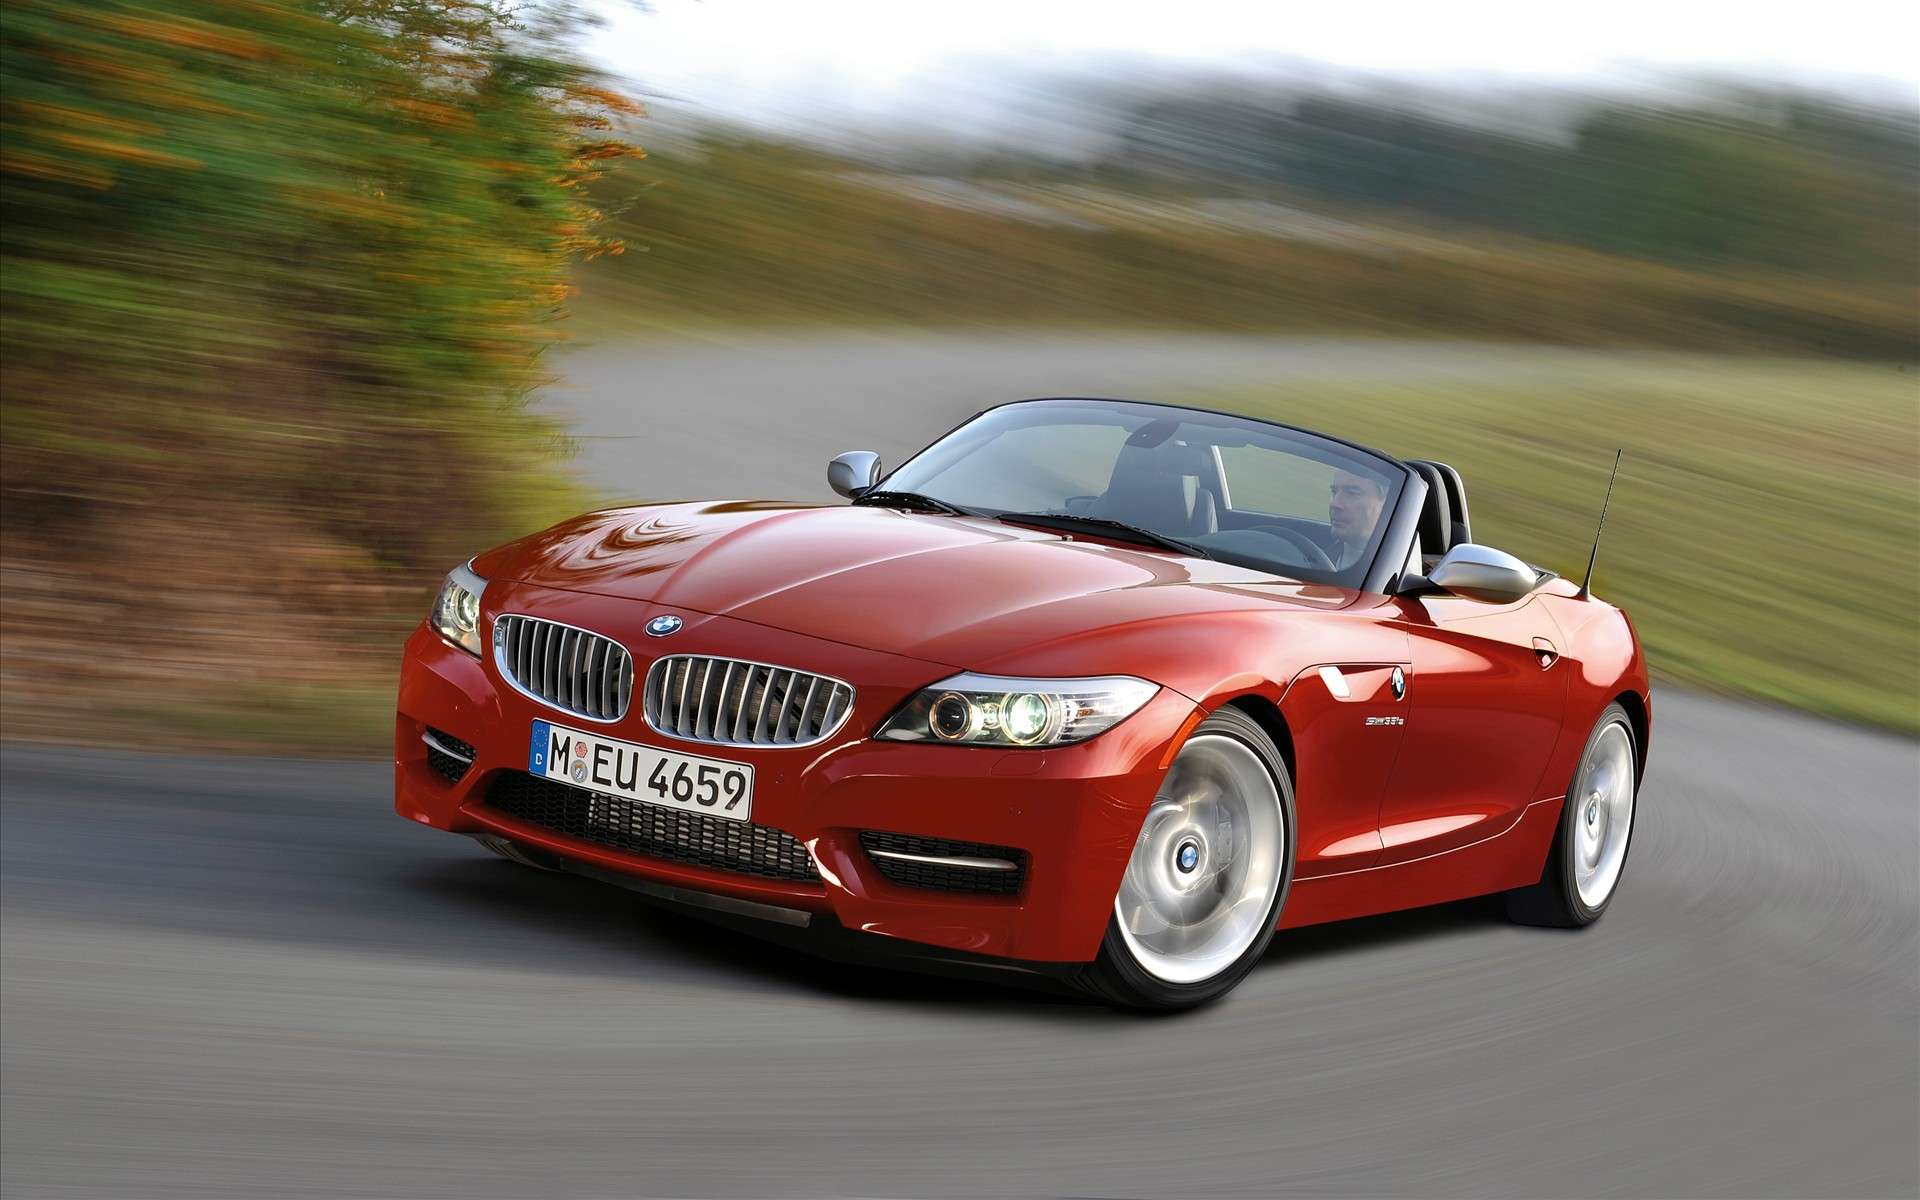 New BMW Z4 2011 Car Wallpapers HD Wallpapers 1920x1200